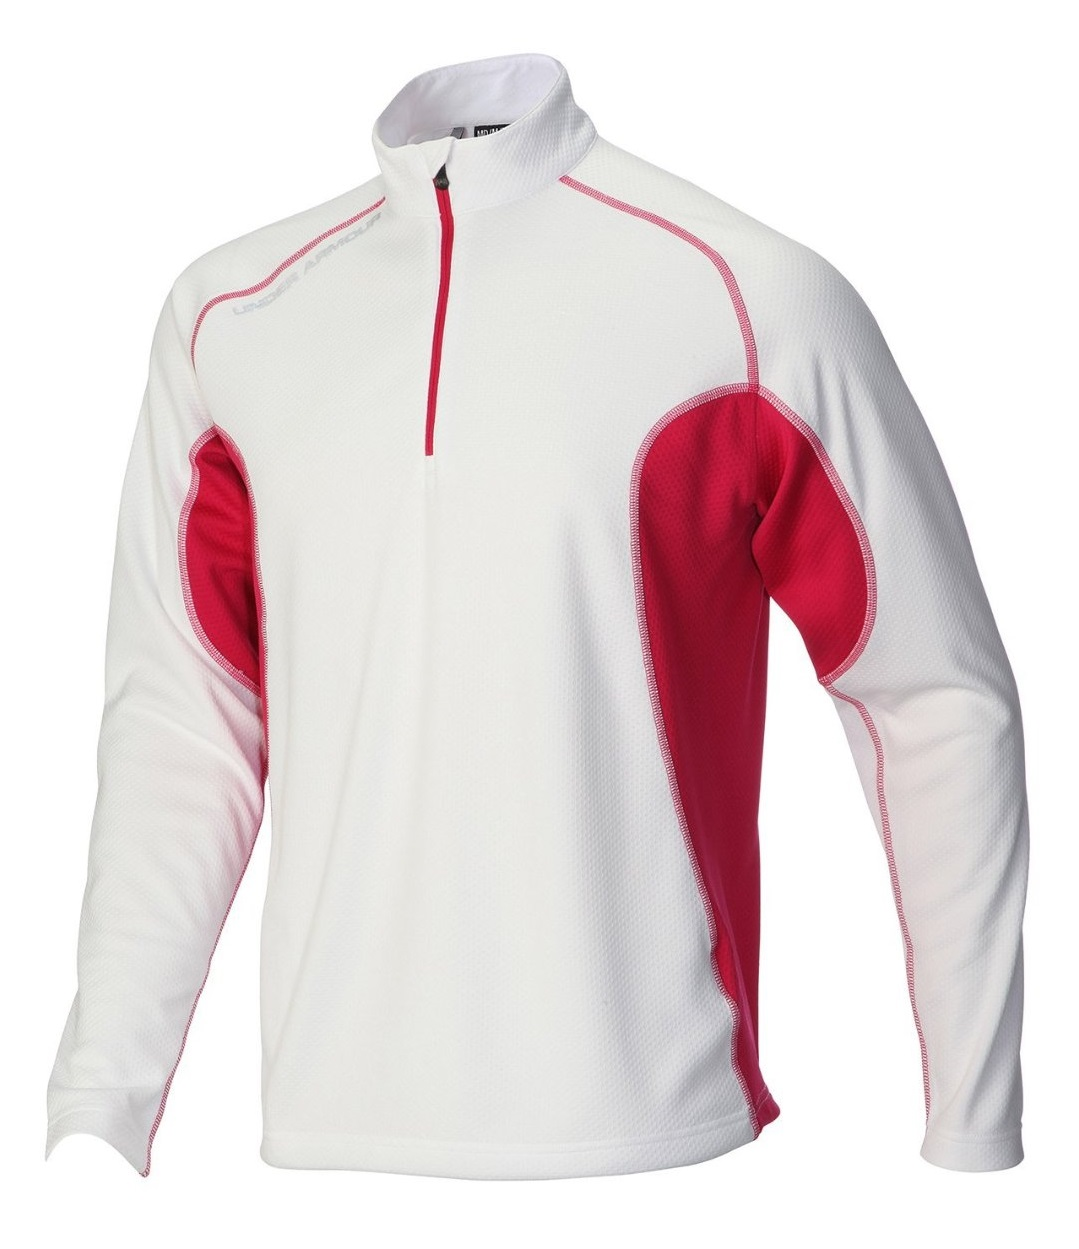 Under Armour Mens Golf Pullovers